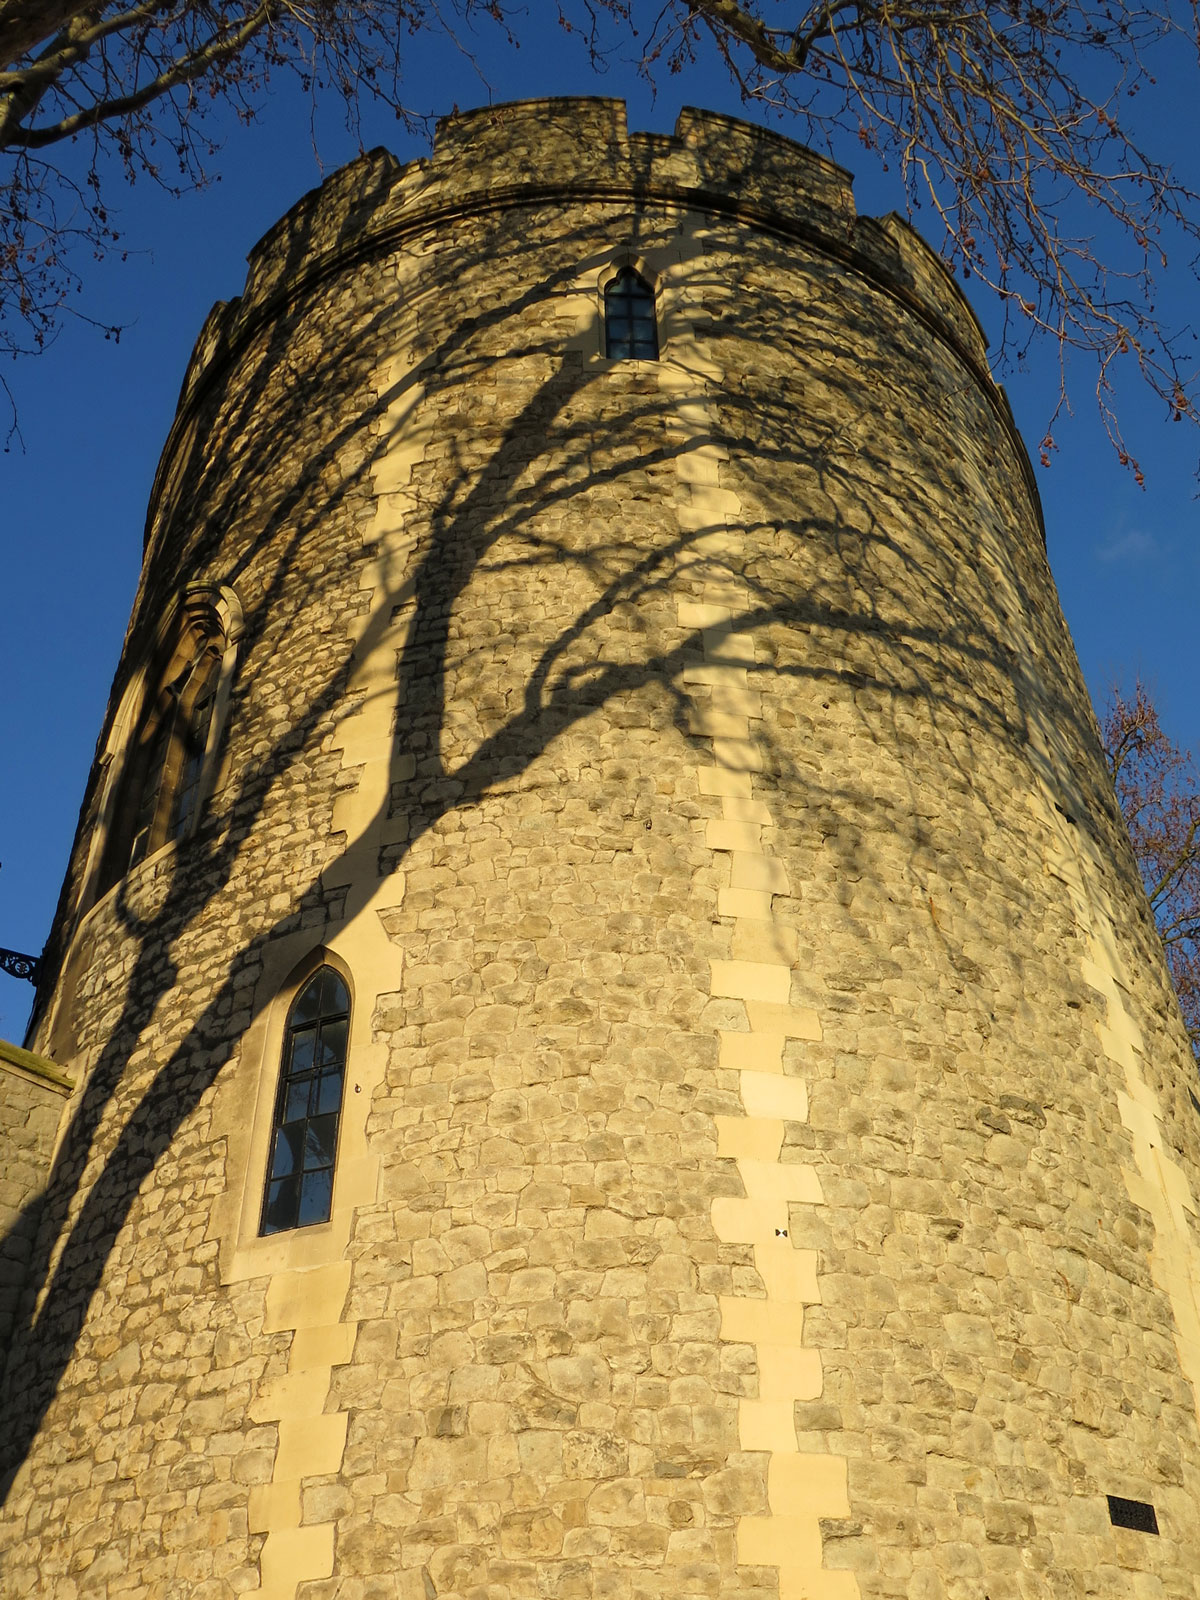 The Lanthorn Tower